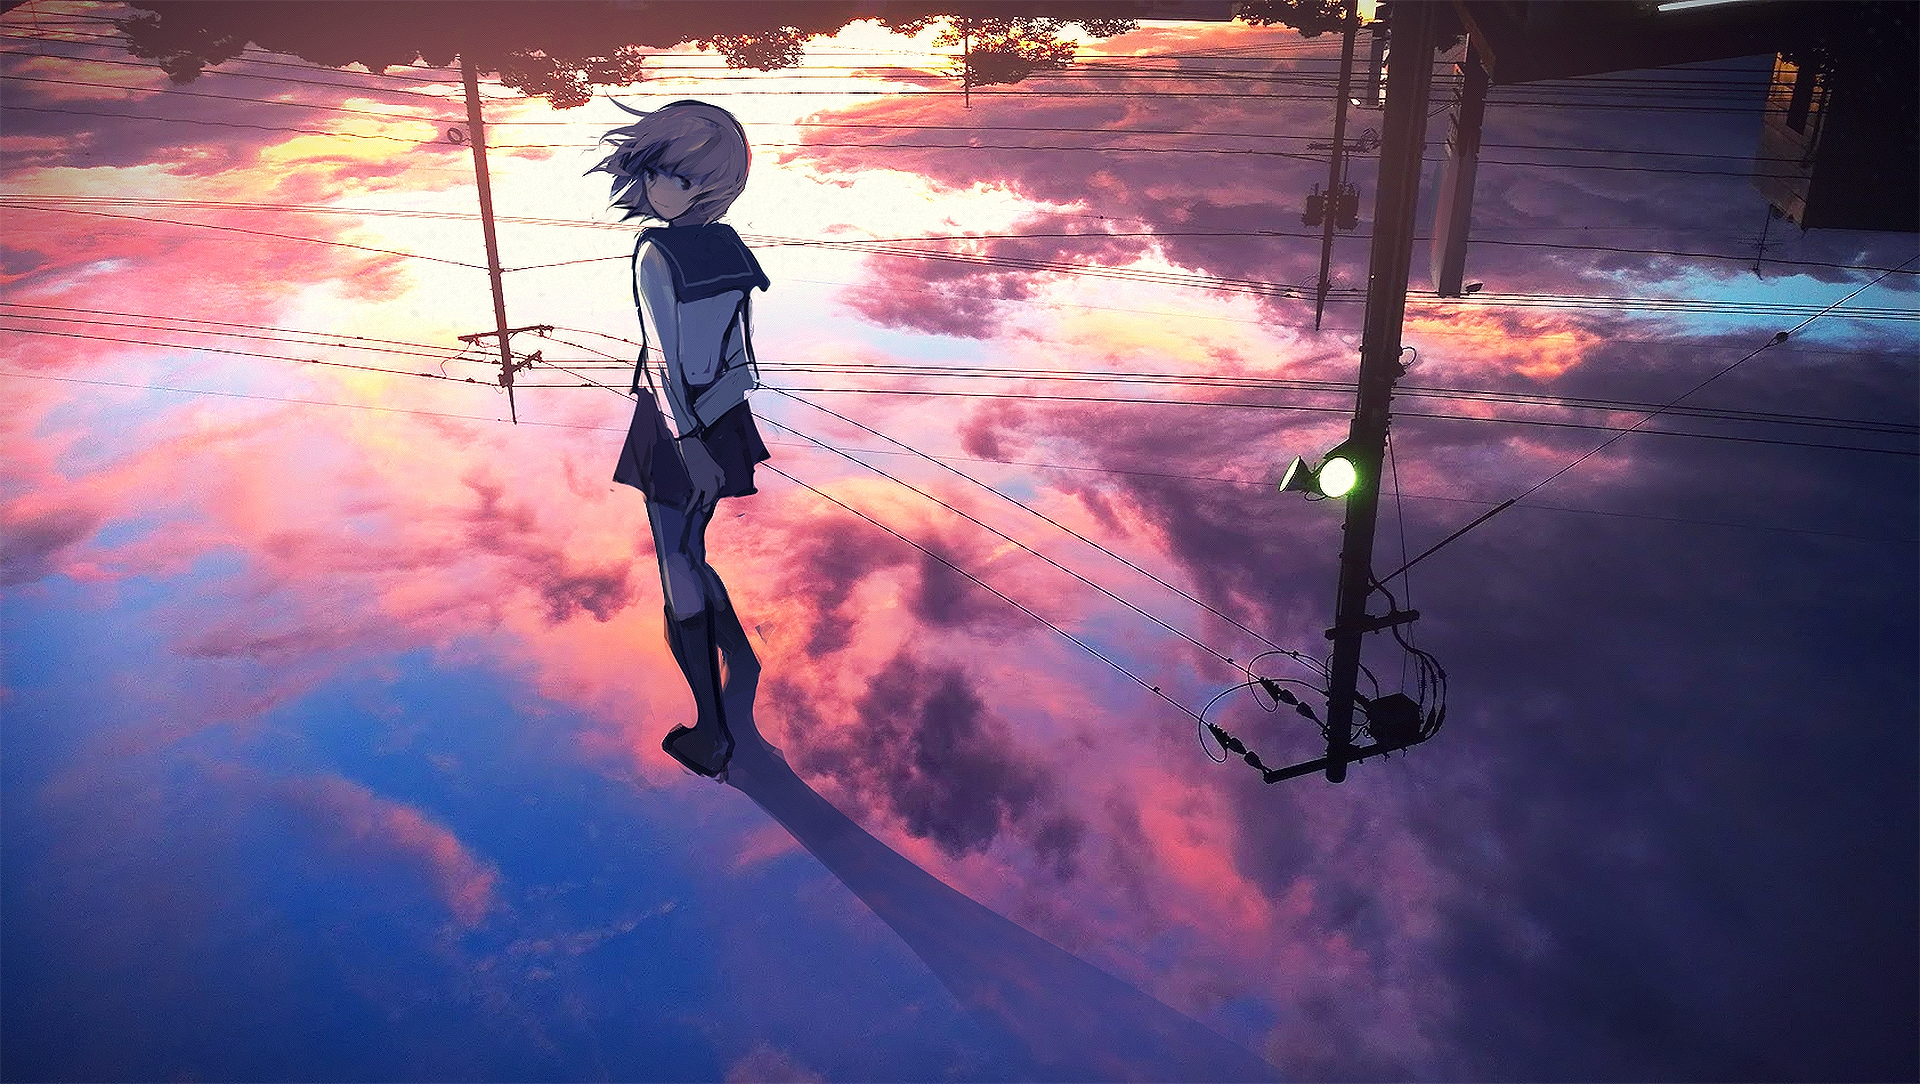 Anime - Original  Girl Cloud Reflection Wallpaper